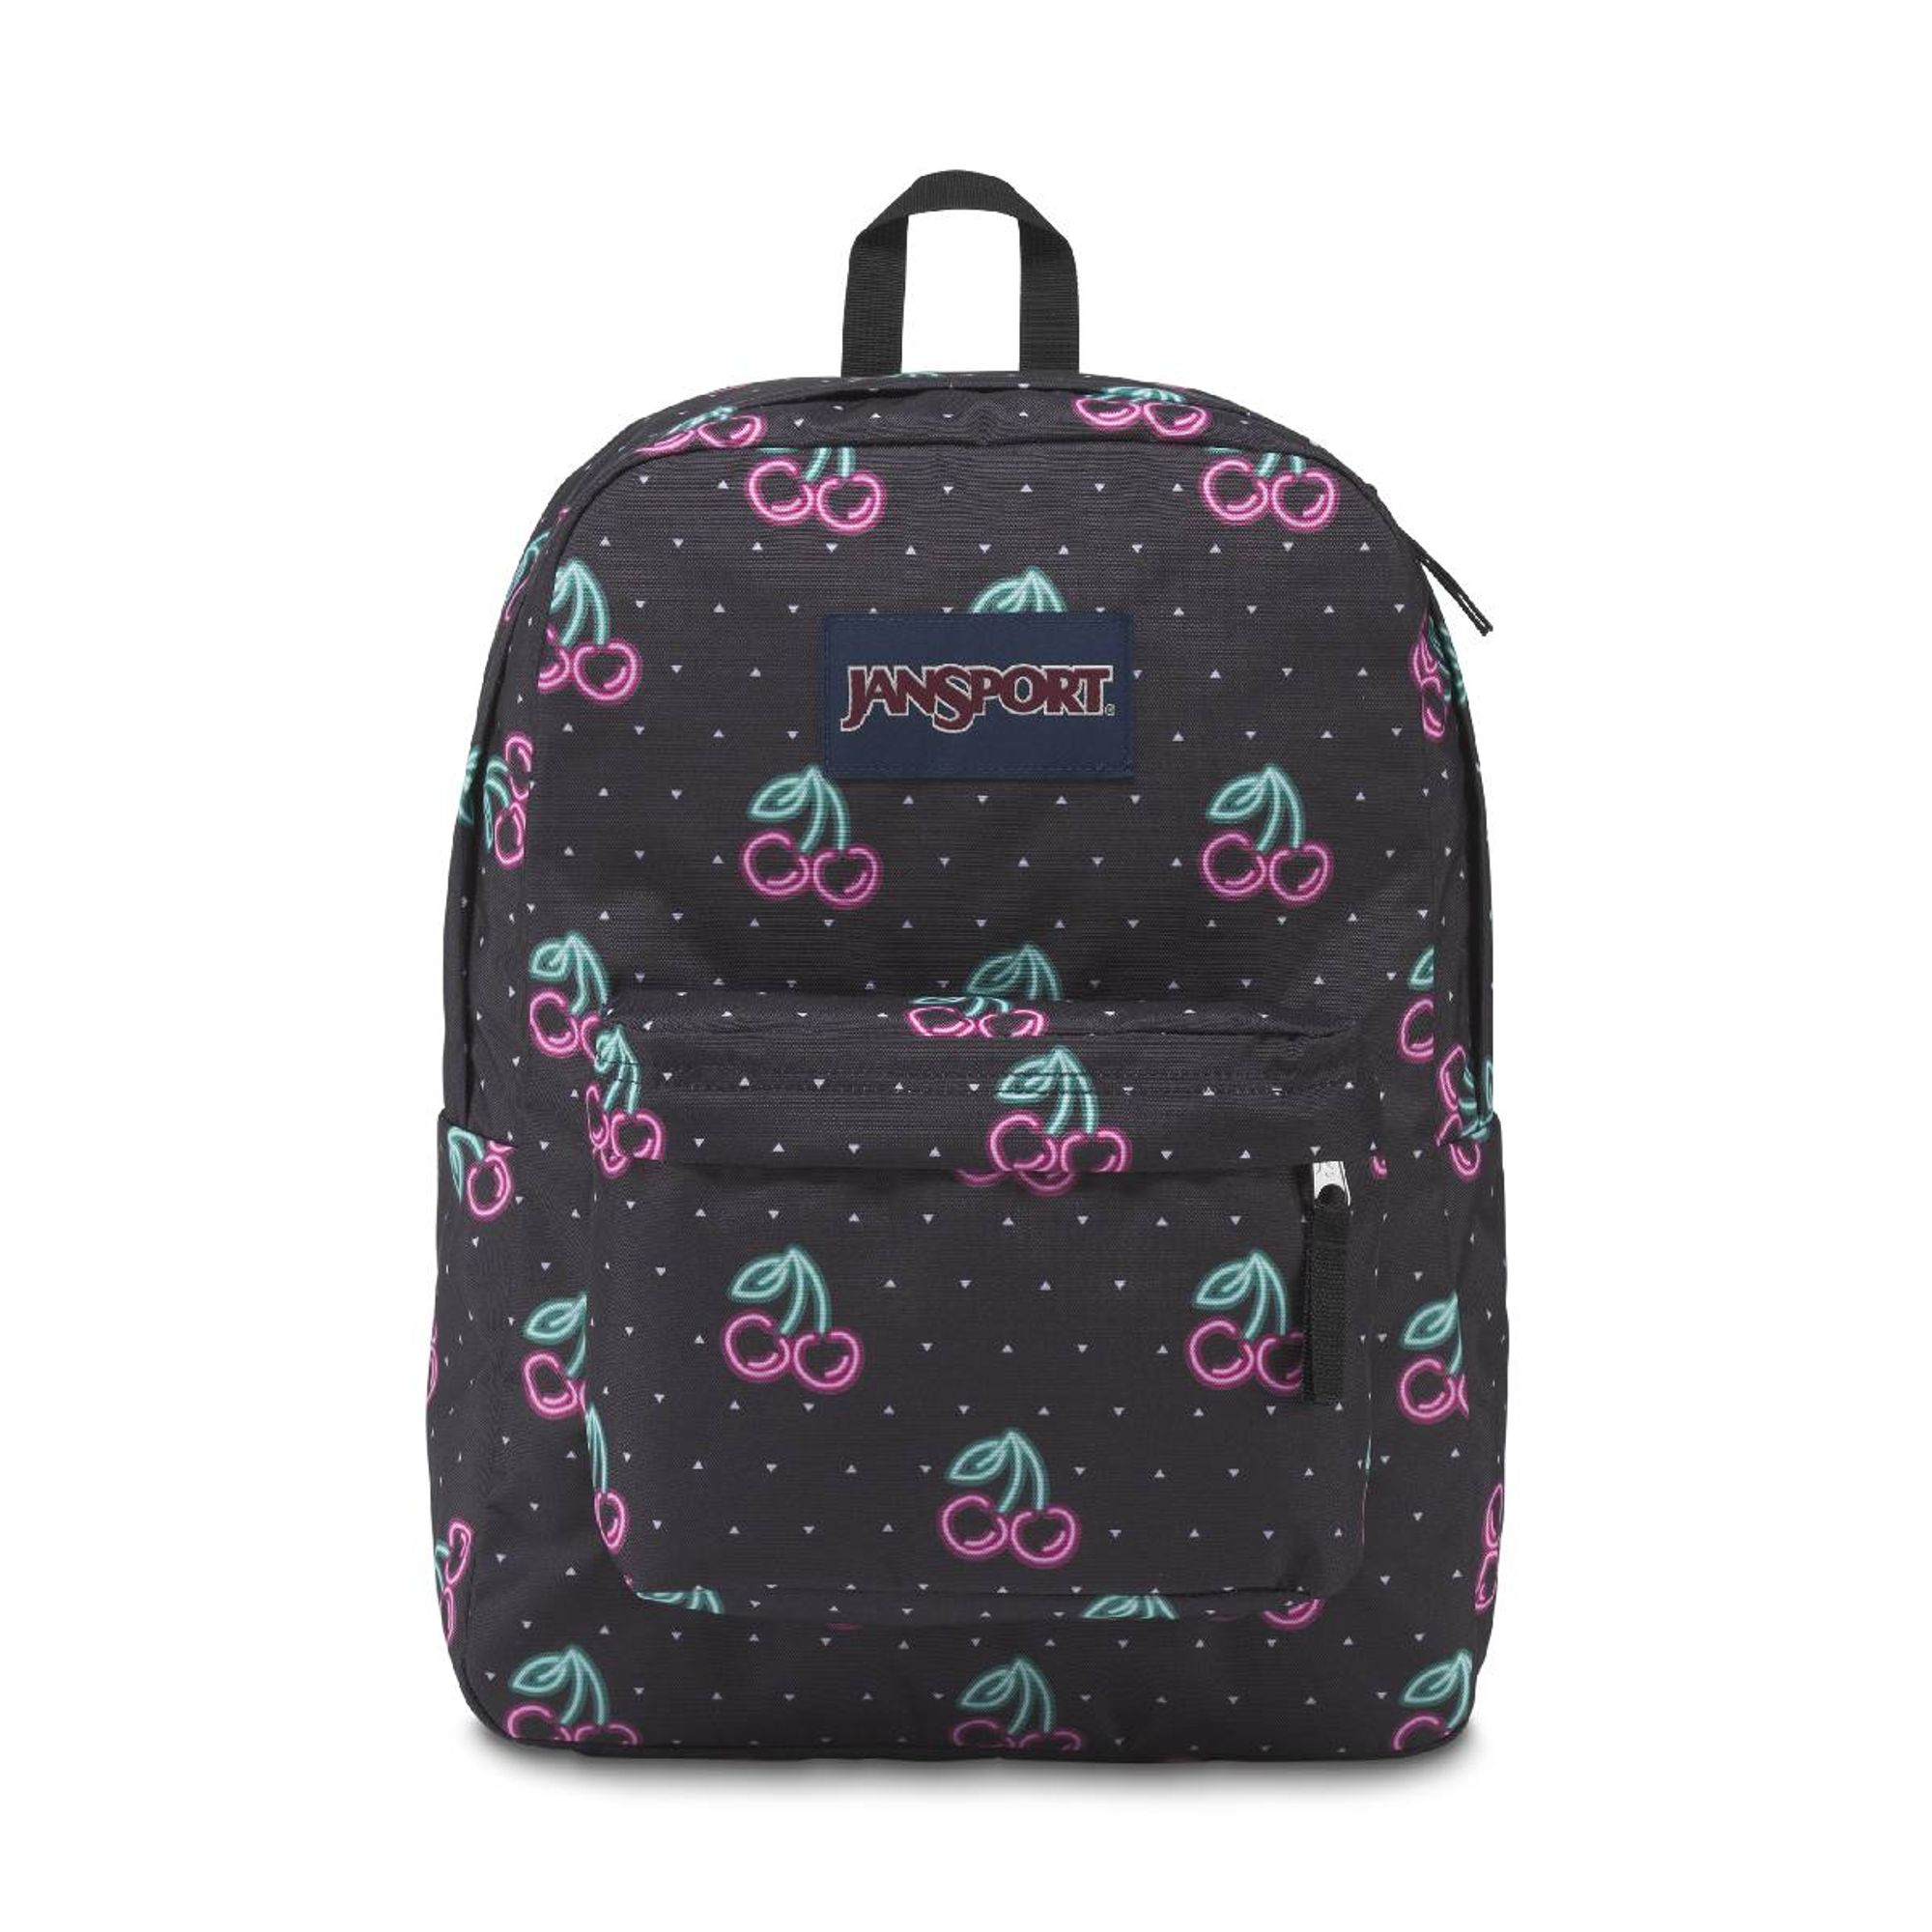 0c31f9934 Jansport Mochila Superbreak Neon Cherries 352-JS00T501-49N - Felix